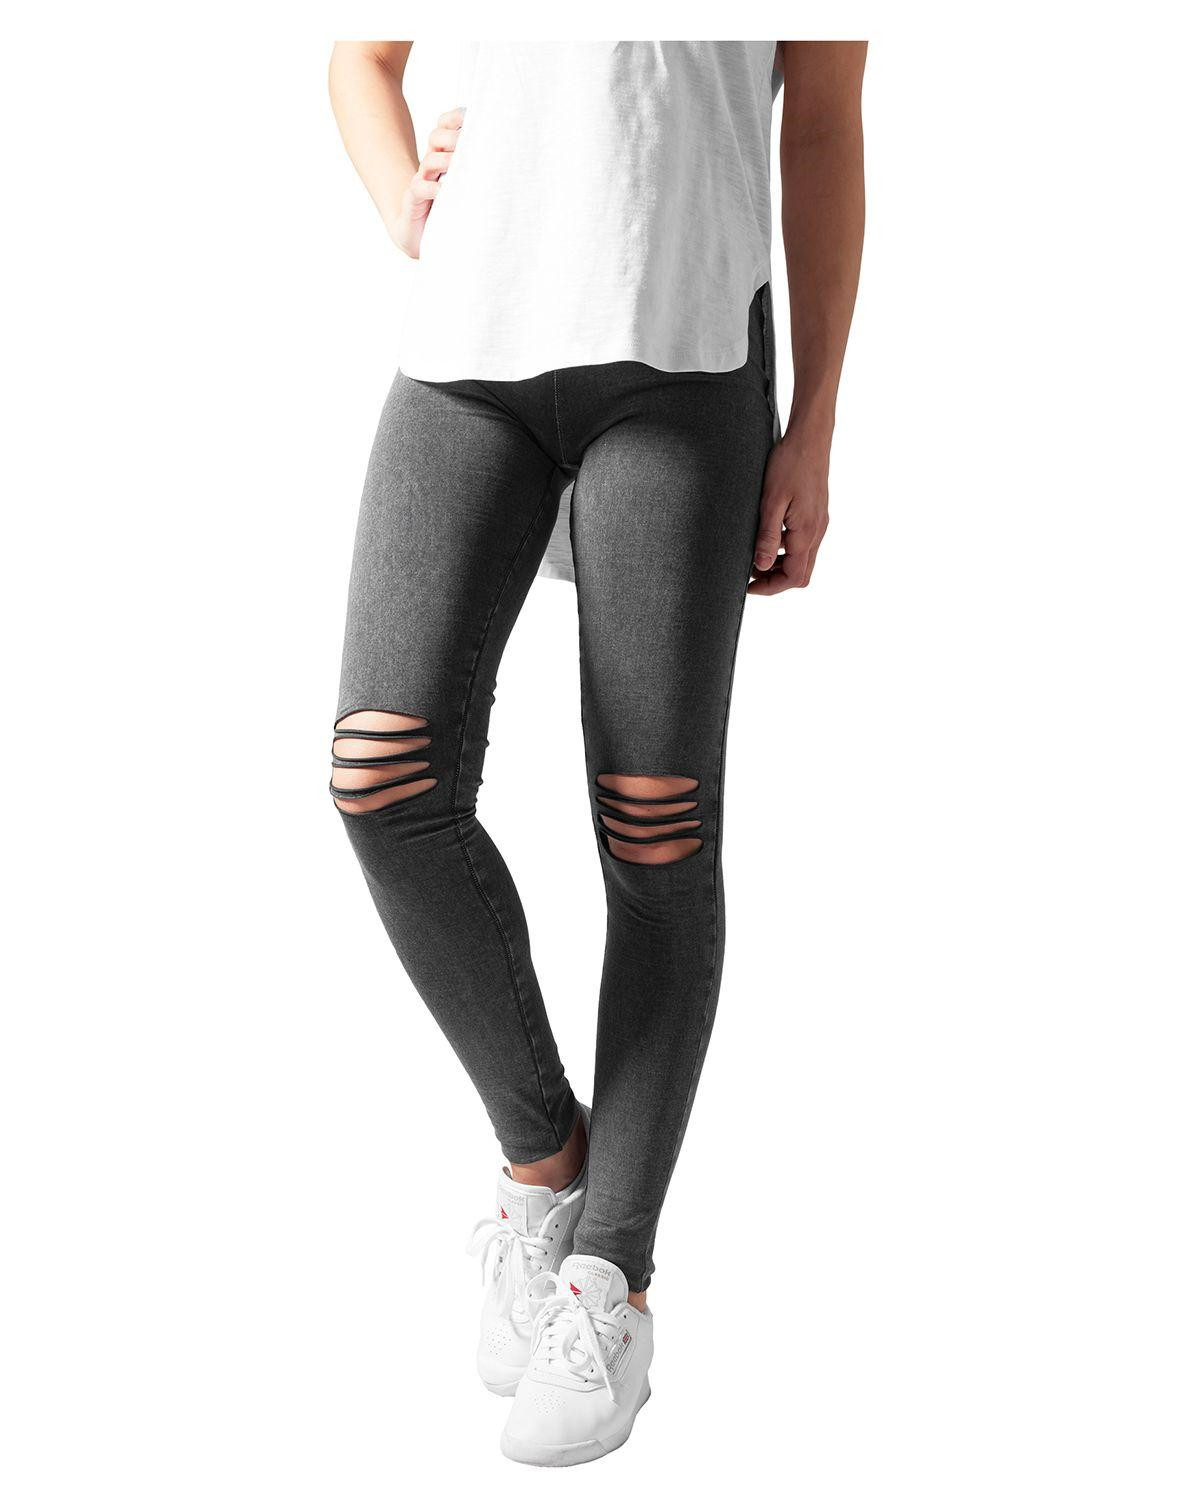 Image of   Urban Classics Cutted Knee Leggings (Washed Sort, L)